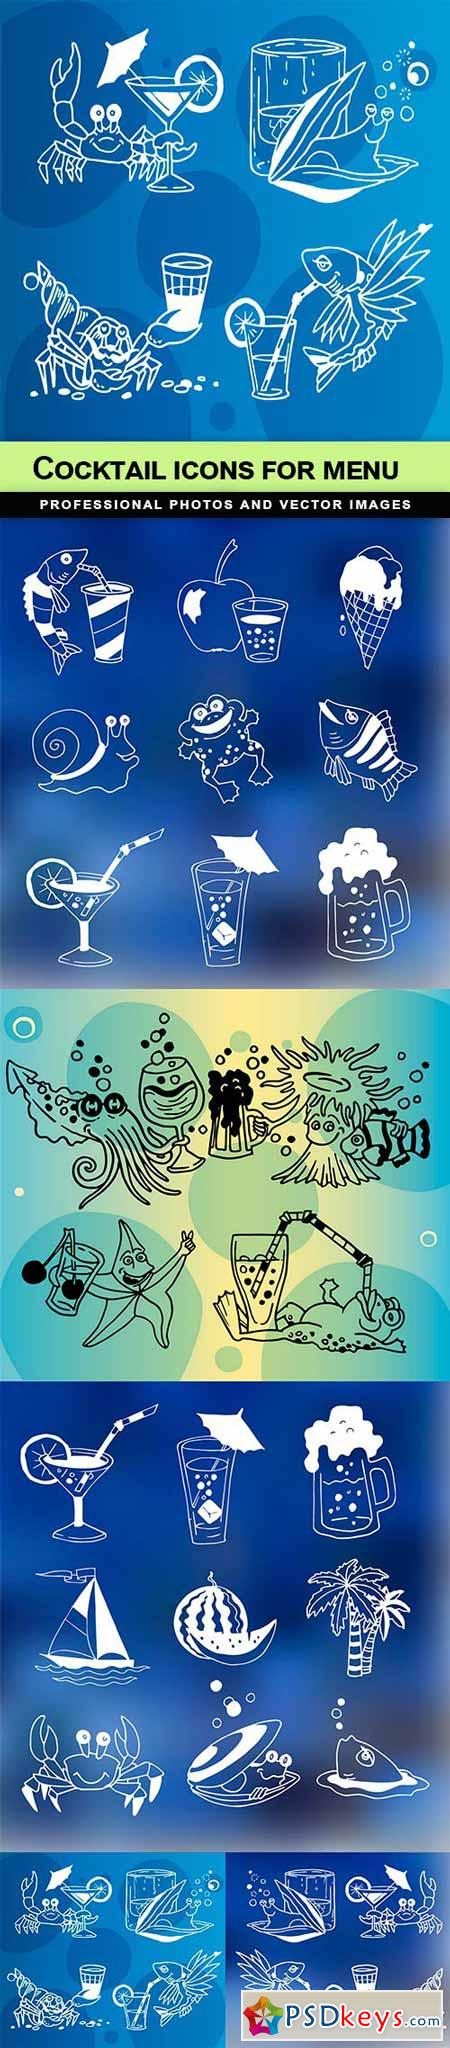 Cocktail Icons for menu - 5 EPS